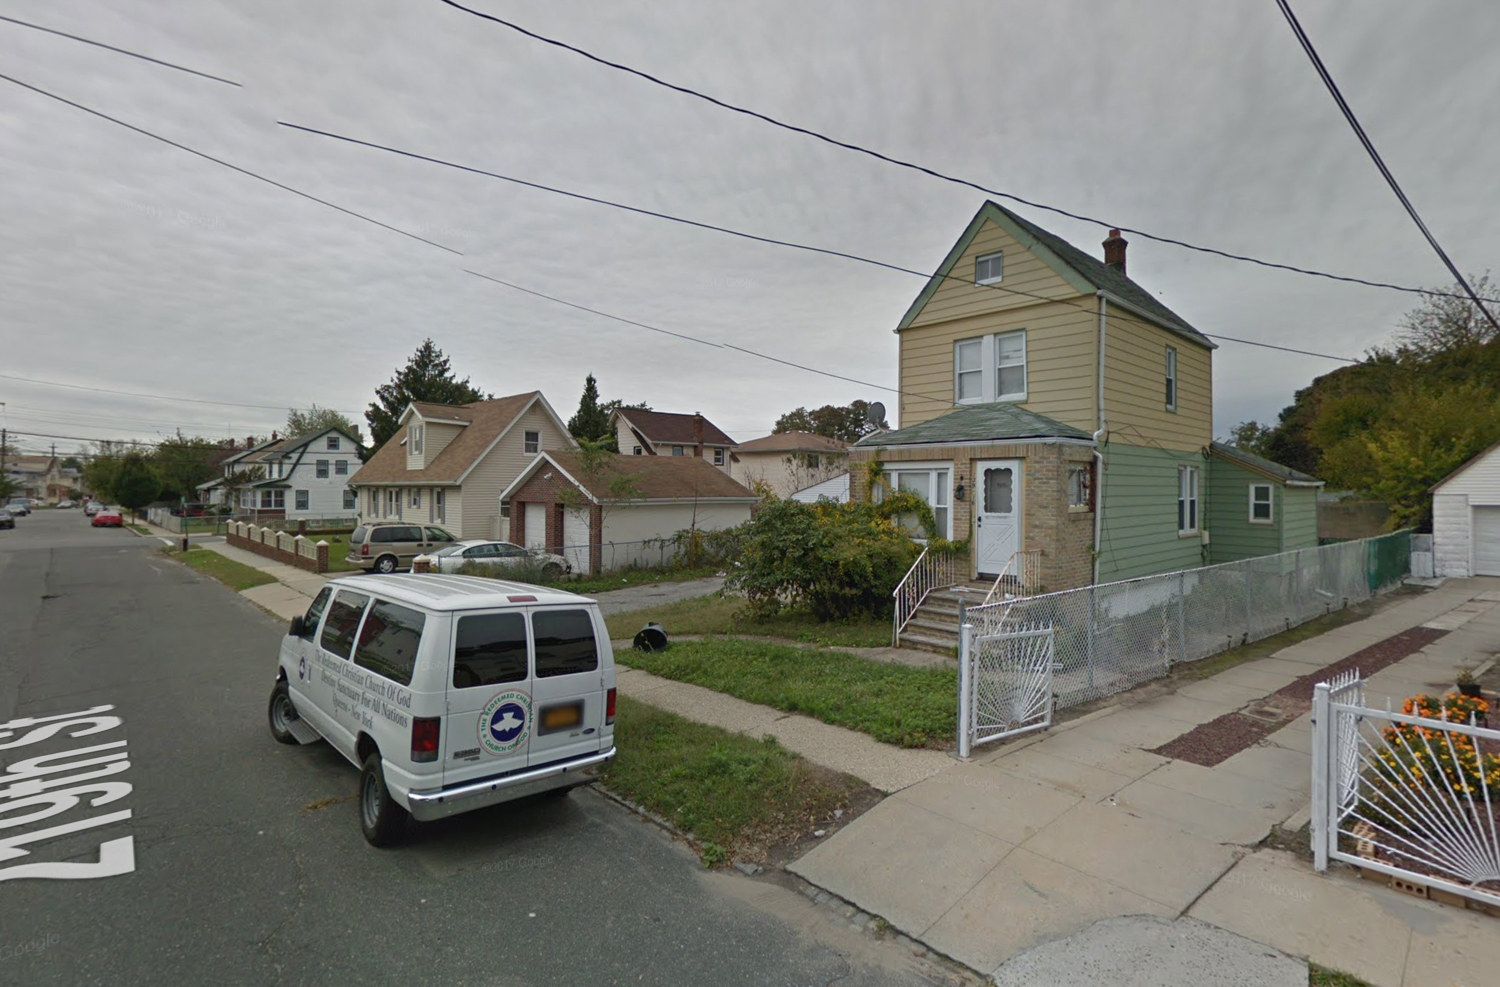 139-16 219th Street, via Google Maps